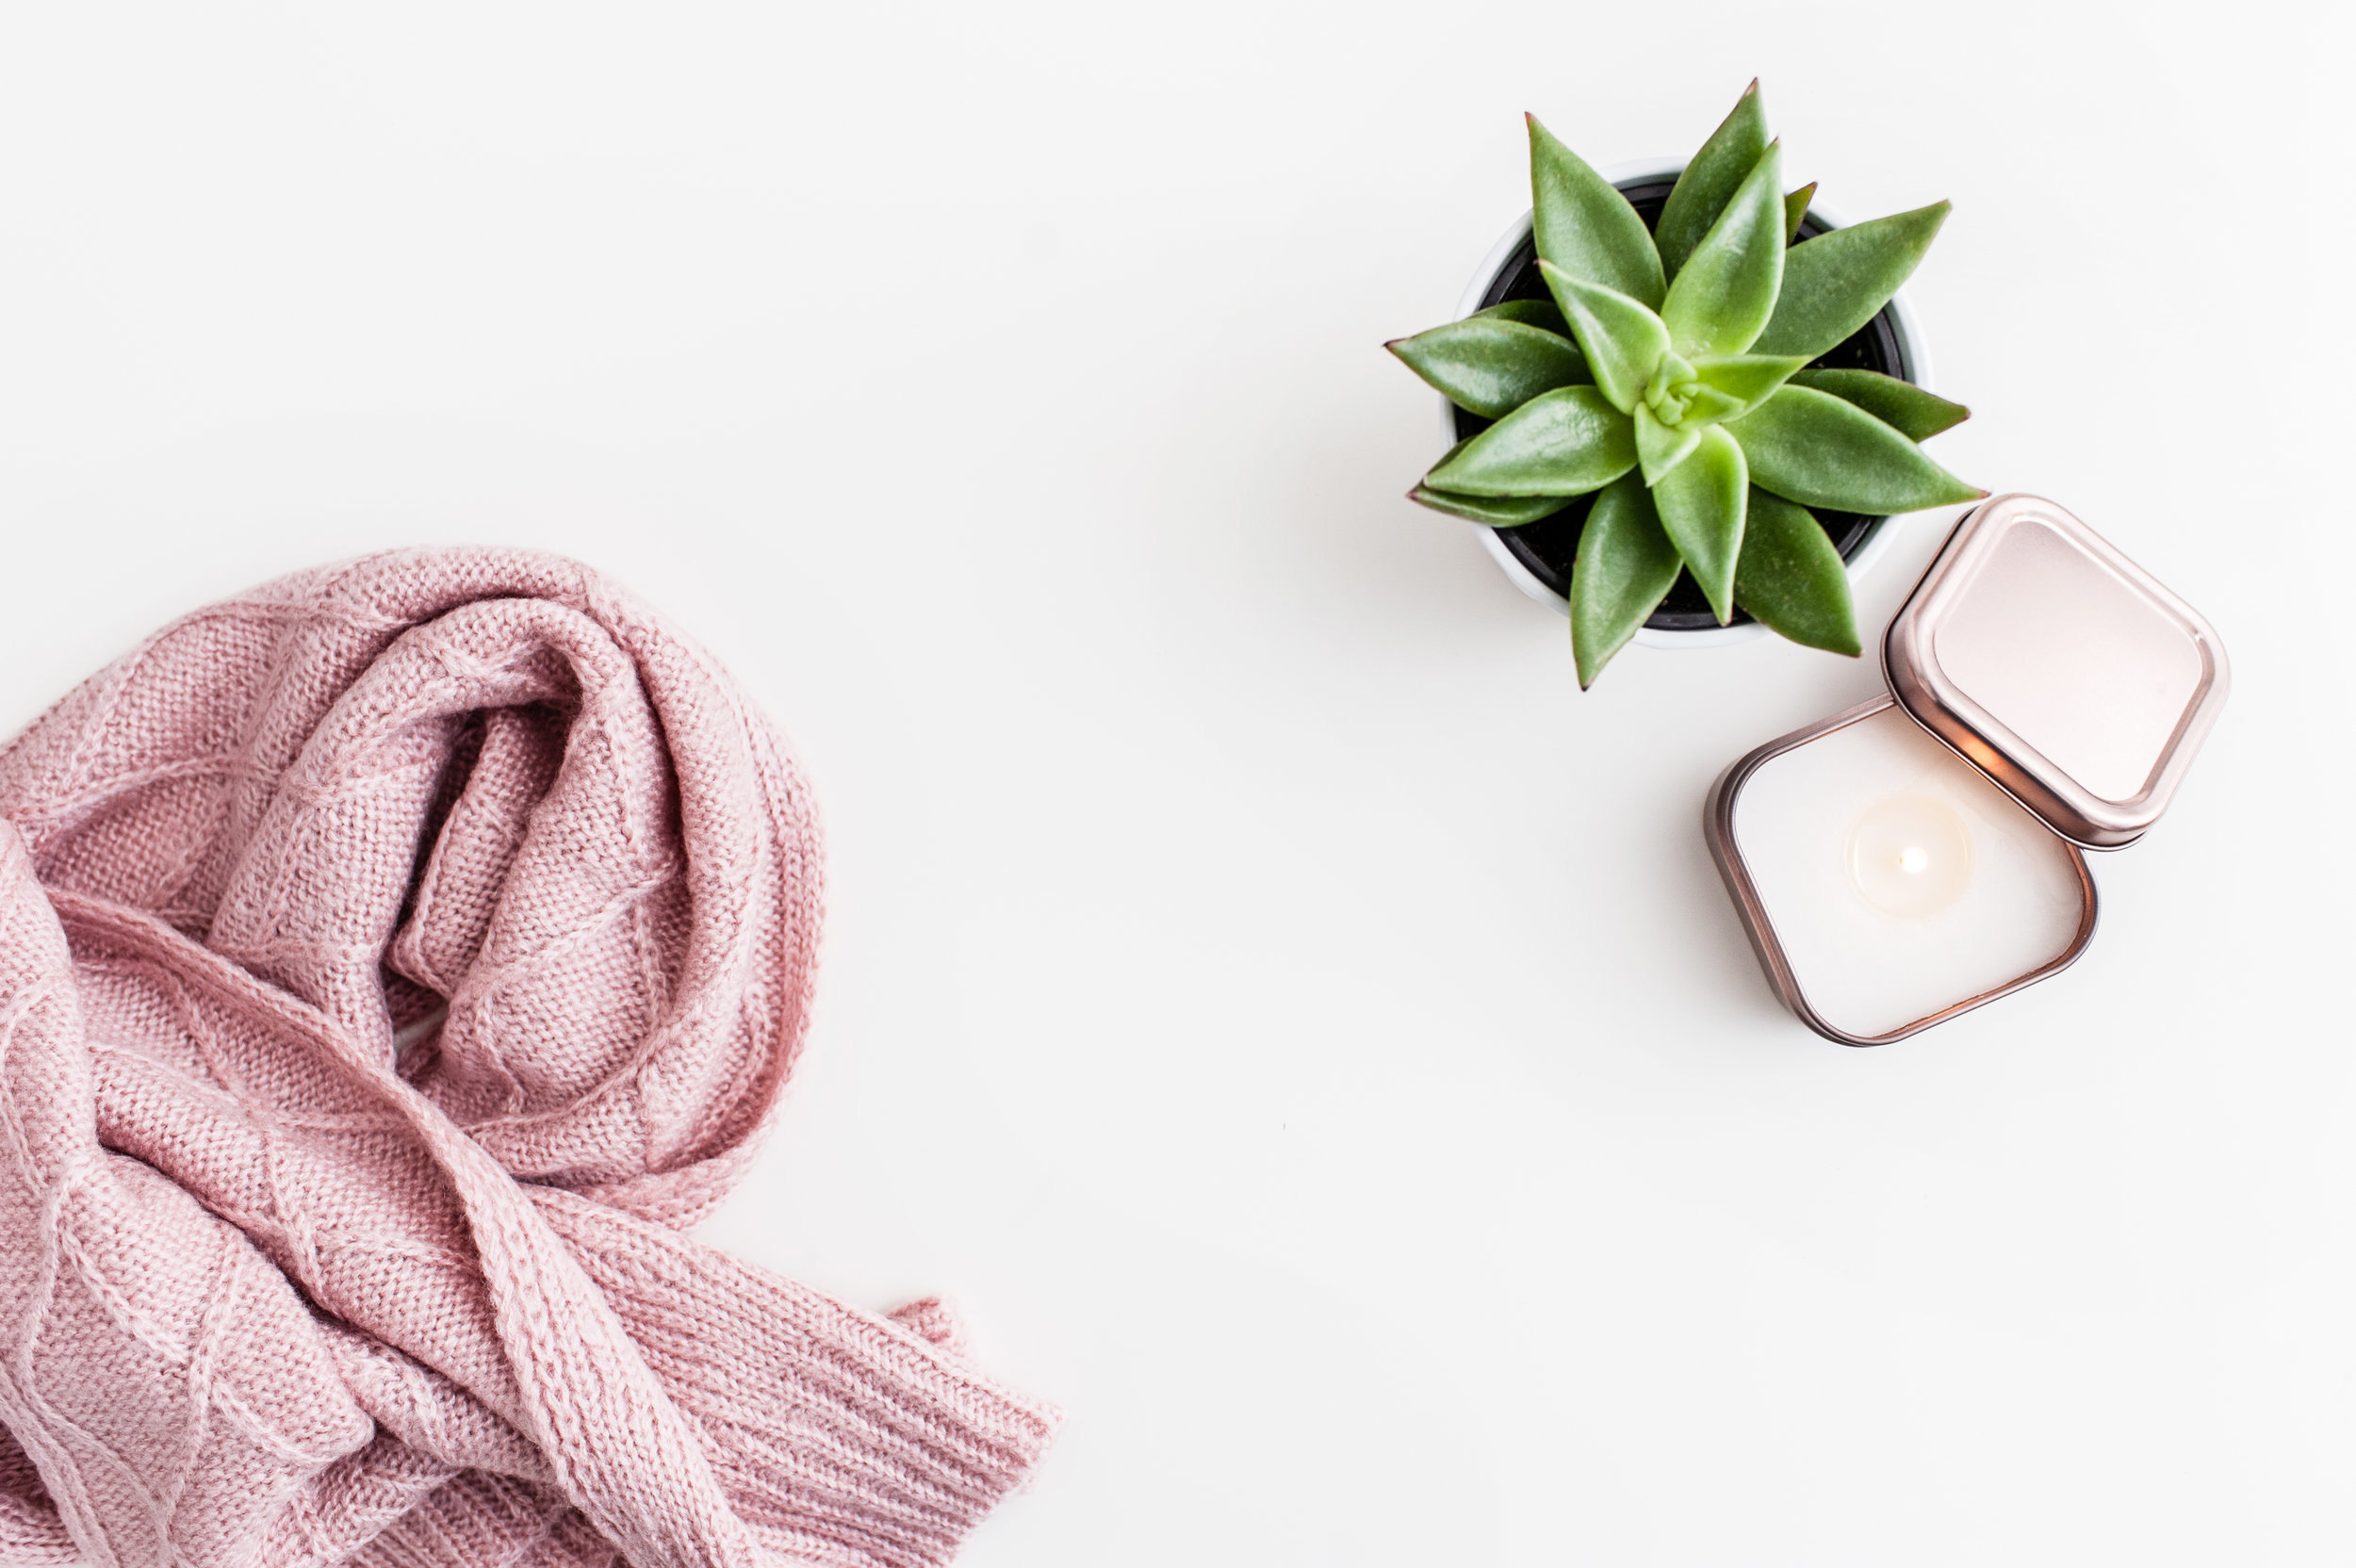 Scarf, Succulent, Candle.jpg